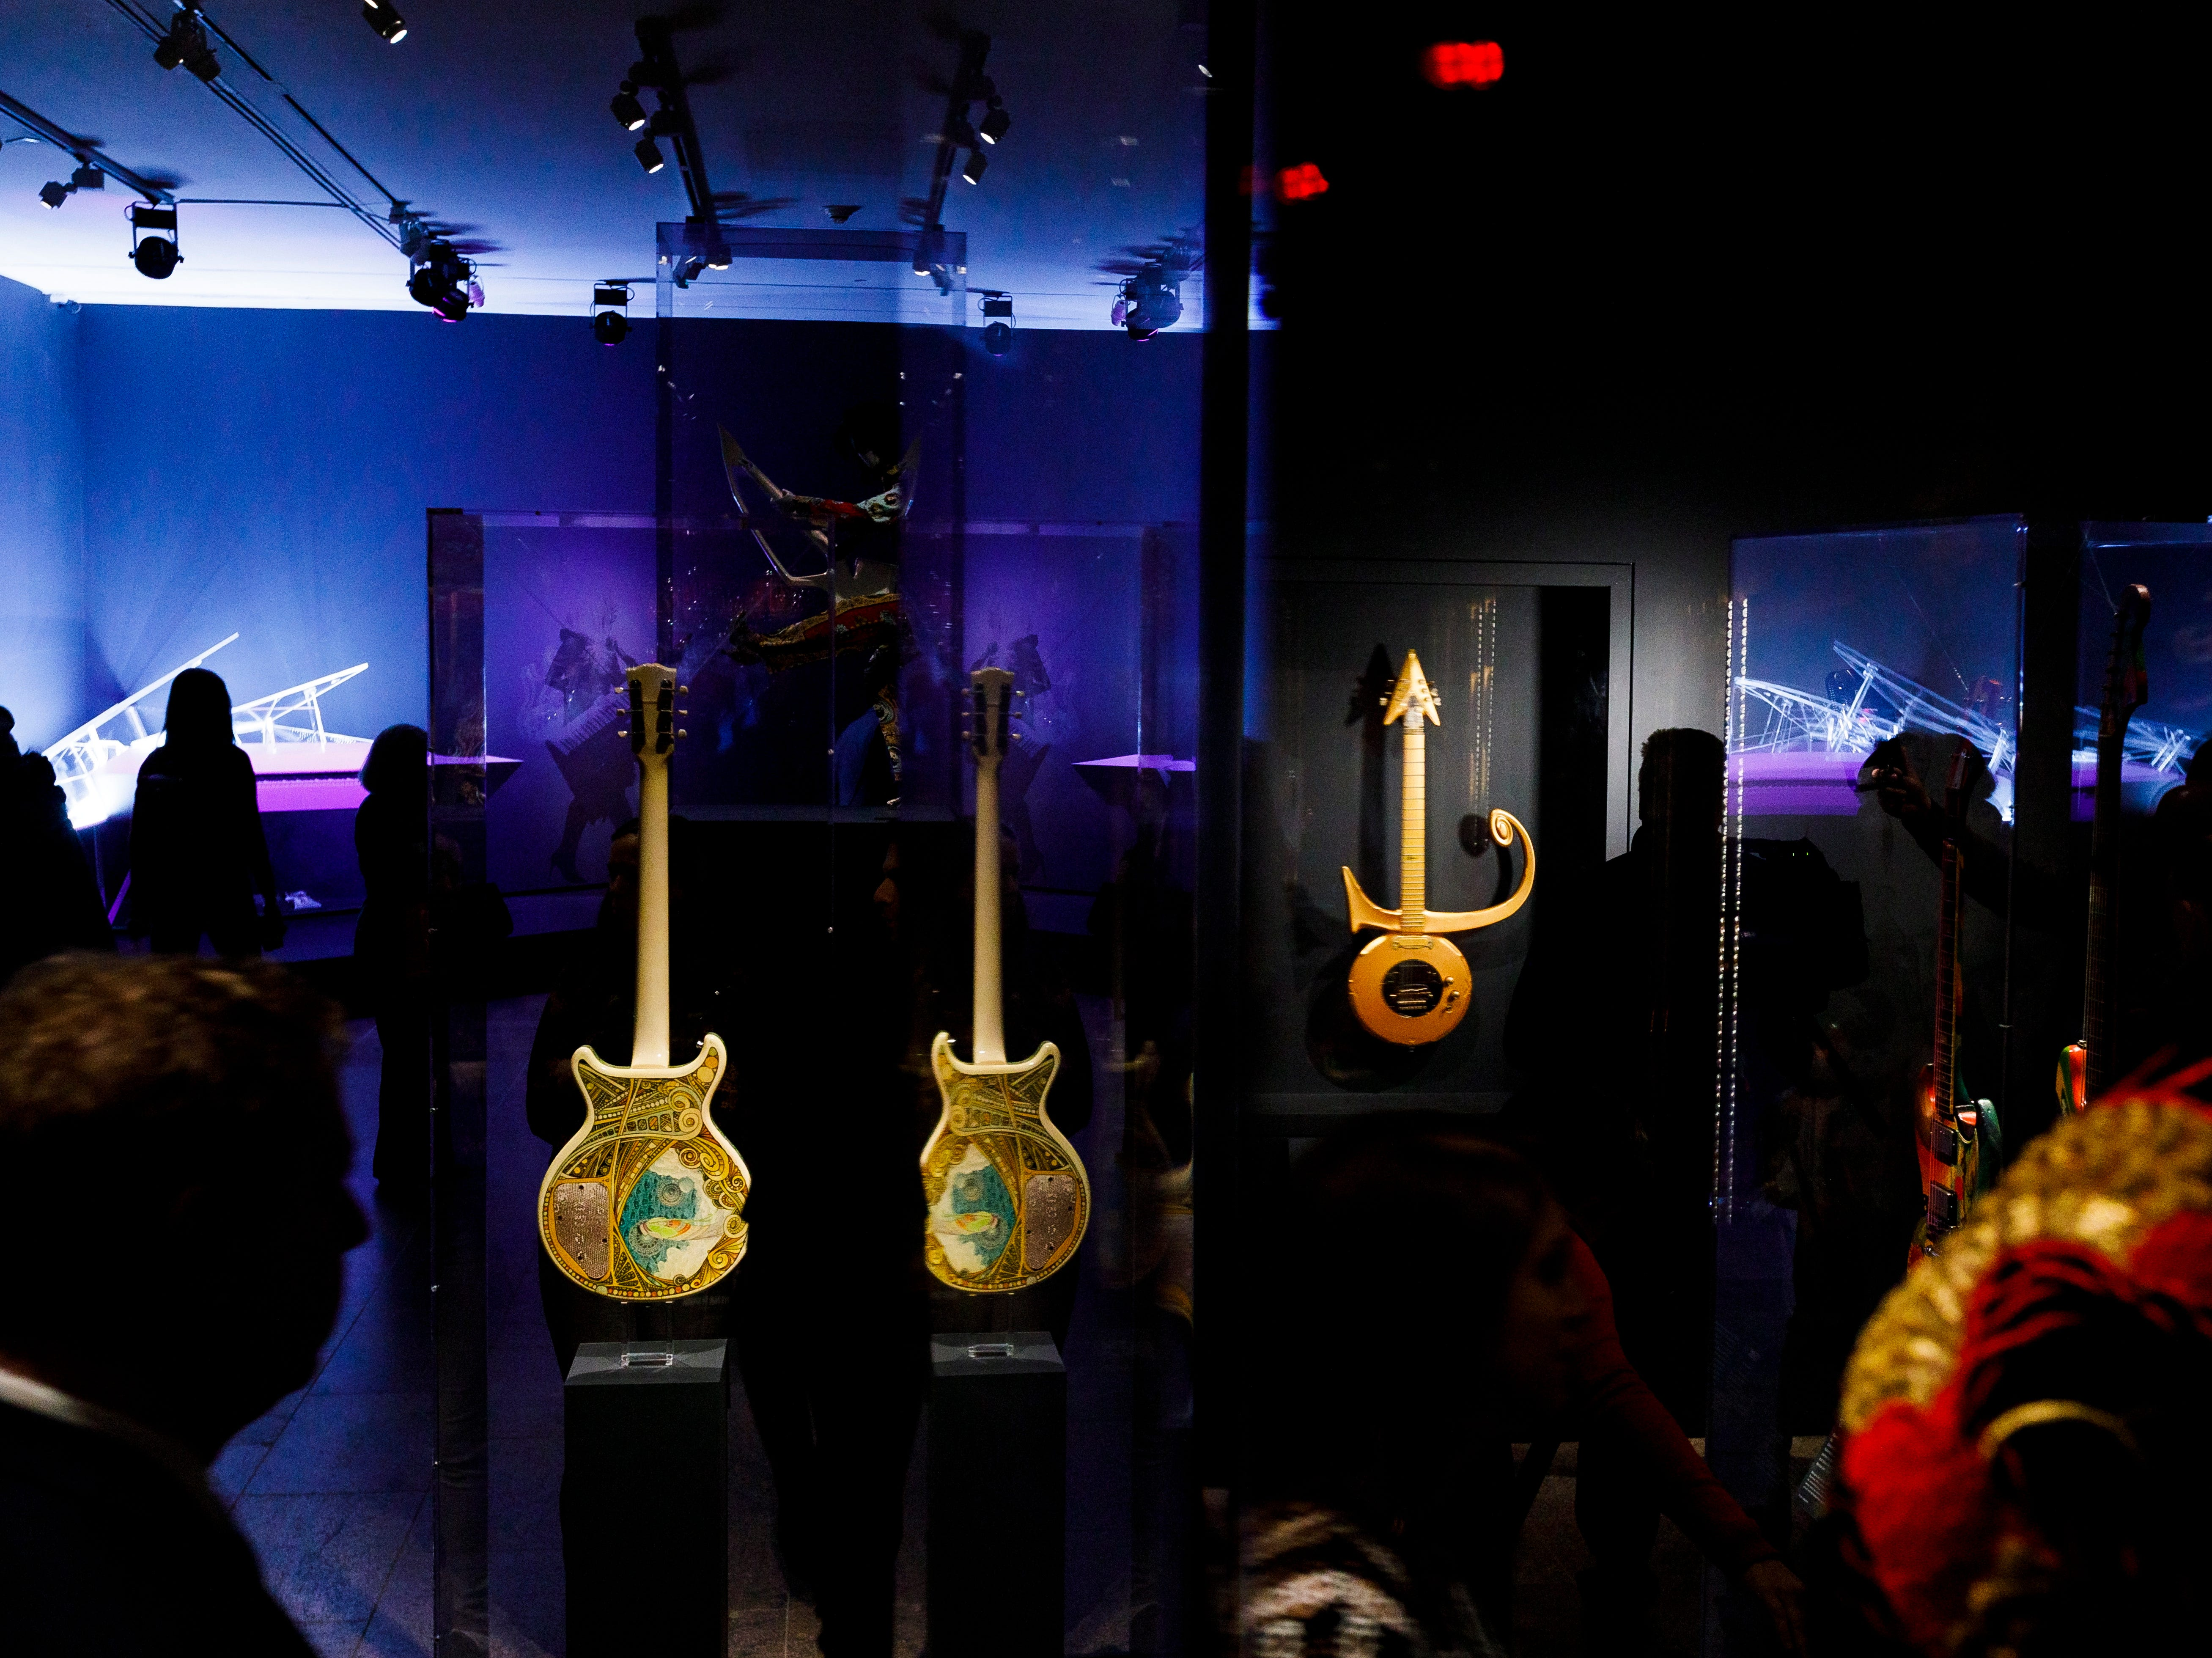 """People look at guitars played by Steve Miller, left, and Prince, right, as well as a piano played by Lady Gaga, background left, during a preview of the new exhibit """"Play It Loud: Instruments of Rock & Roll"""" at the Metropolitan Museum of Art."""